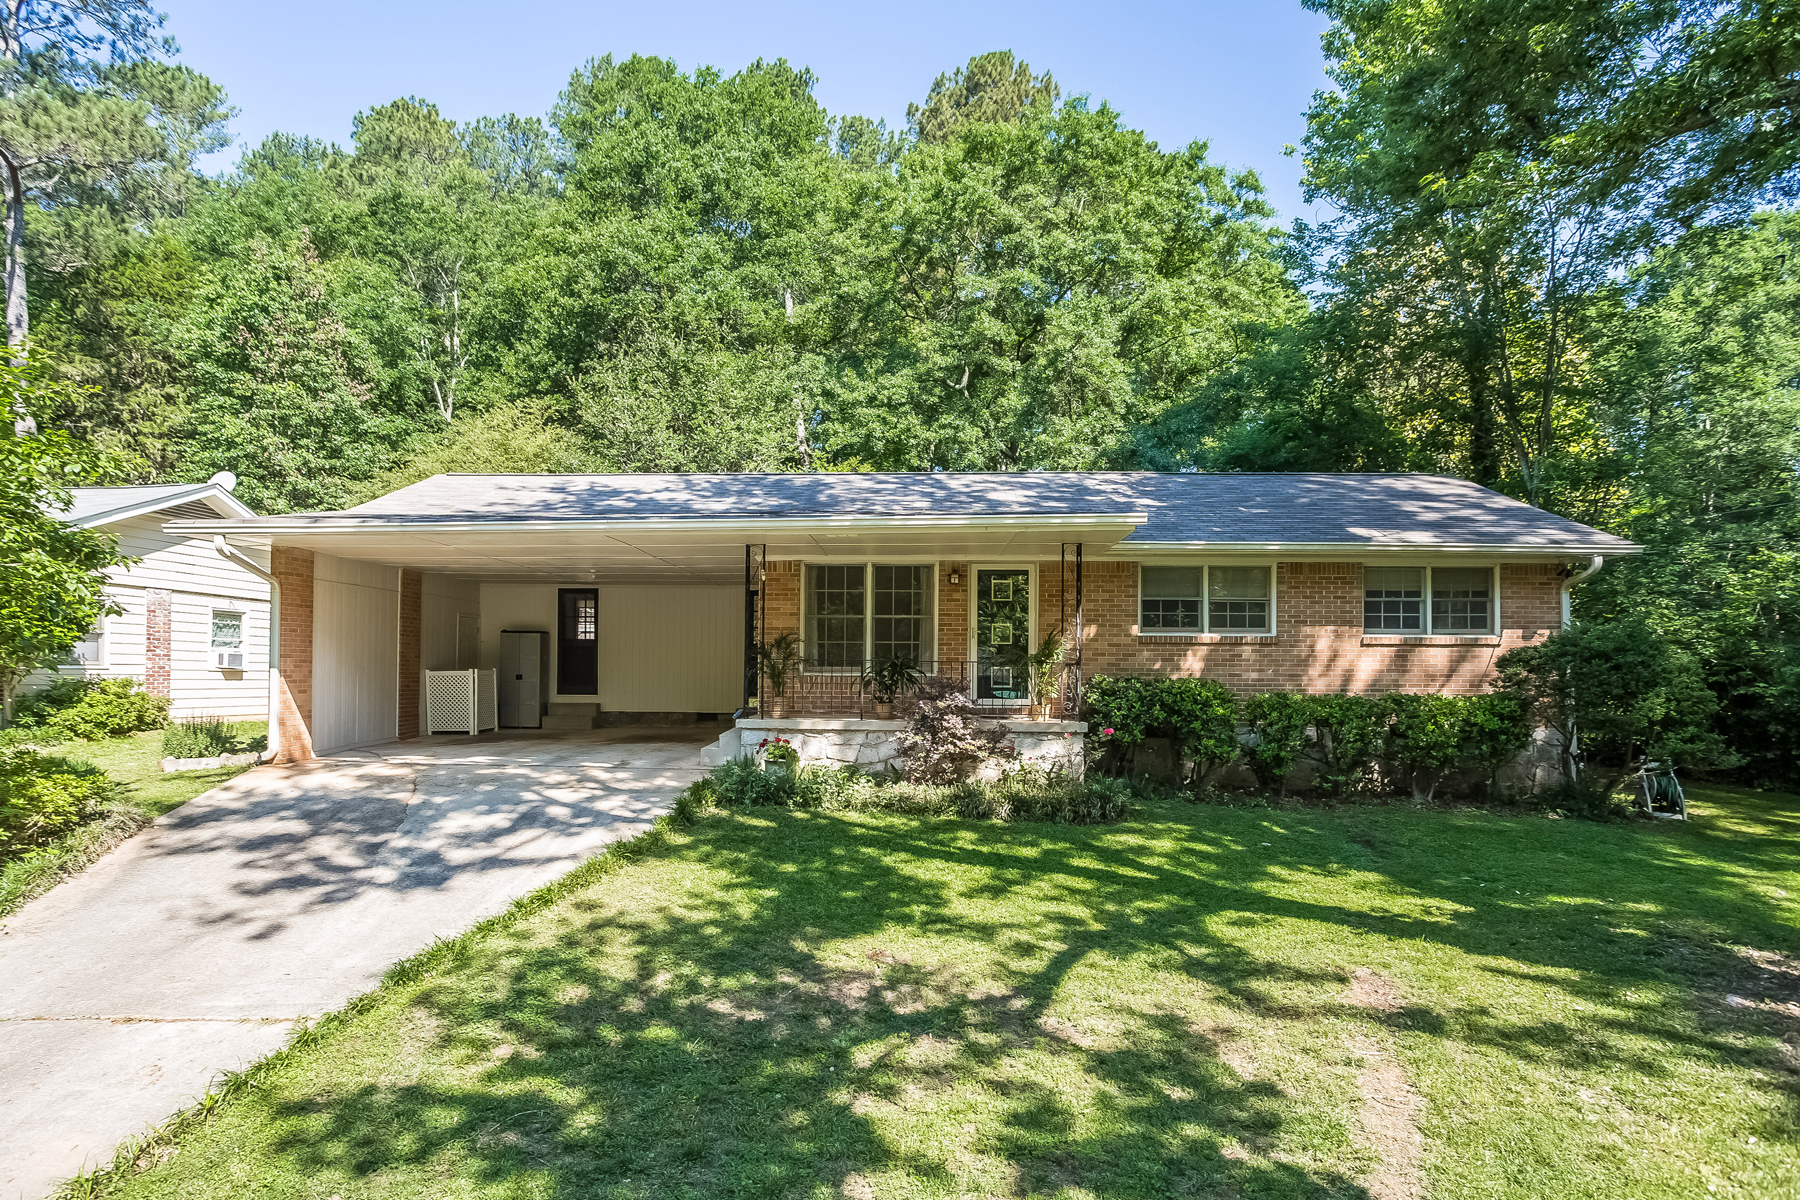 Single Family Home for Sale at Charming, Well Maintained Mid-Century Ranch 2904 Concord Drive Decatur, Georgia, 30033 United States